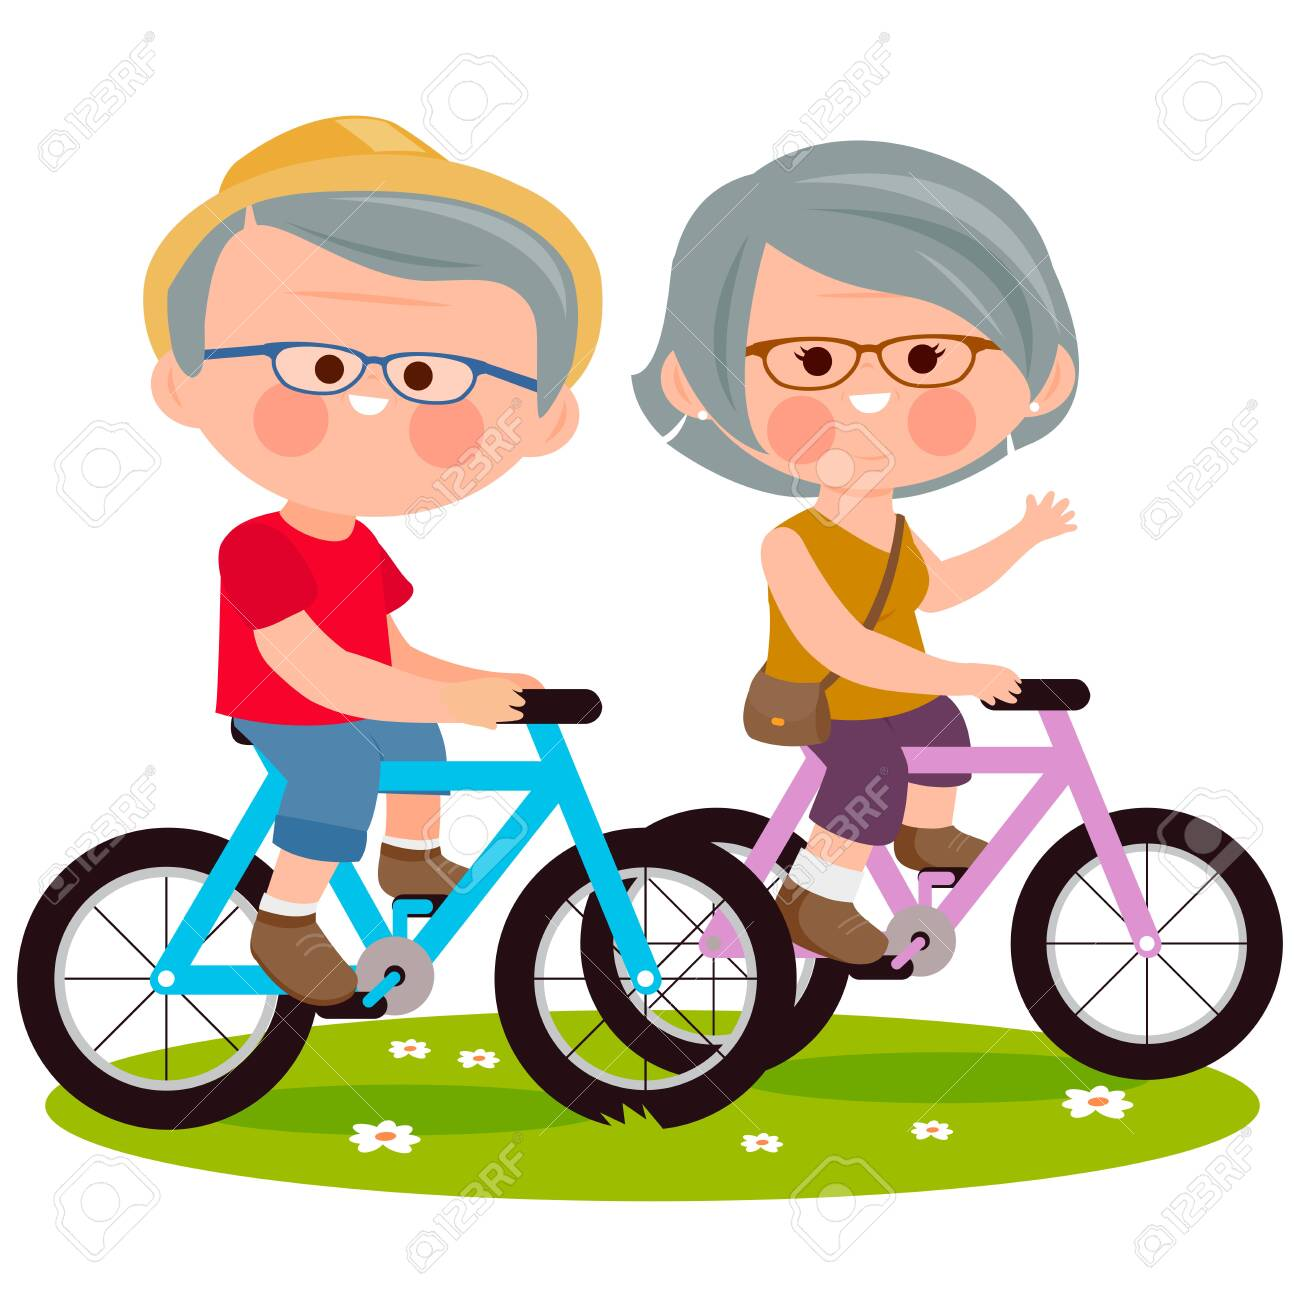 Elderly couple riding their bicycles at the park. Vector illustration - 159103147